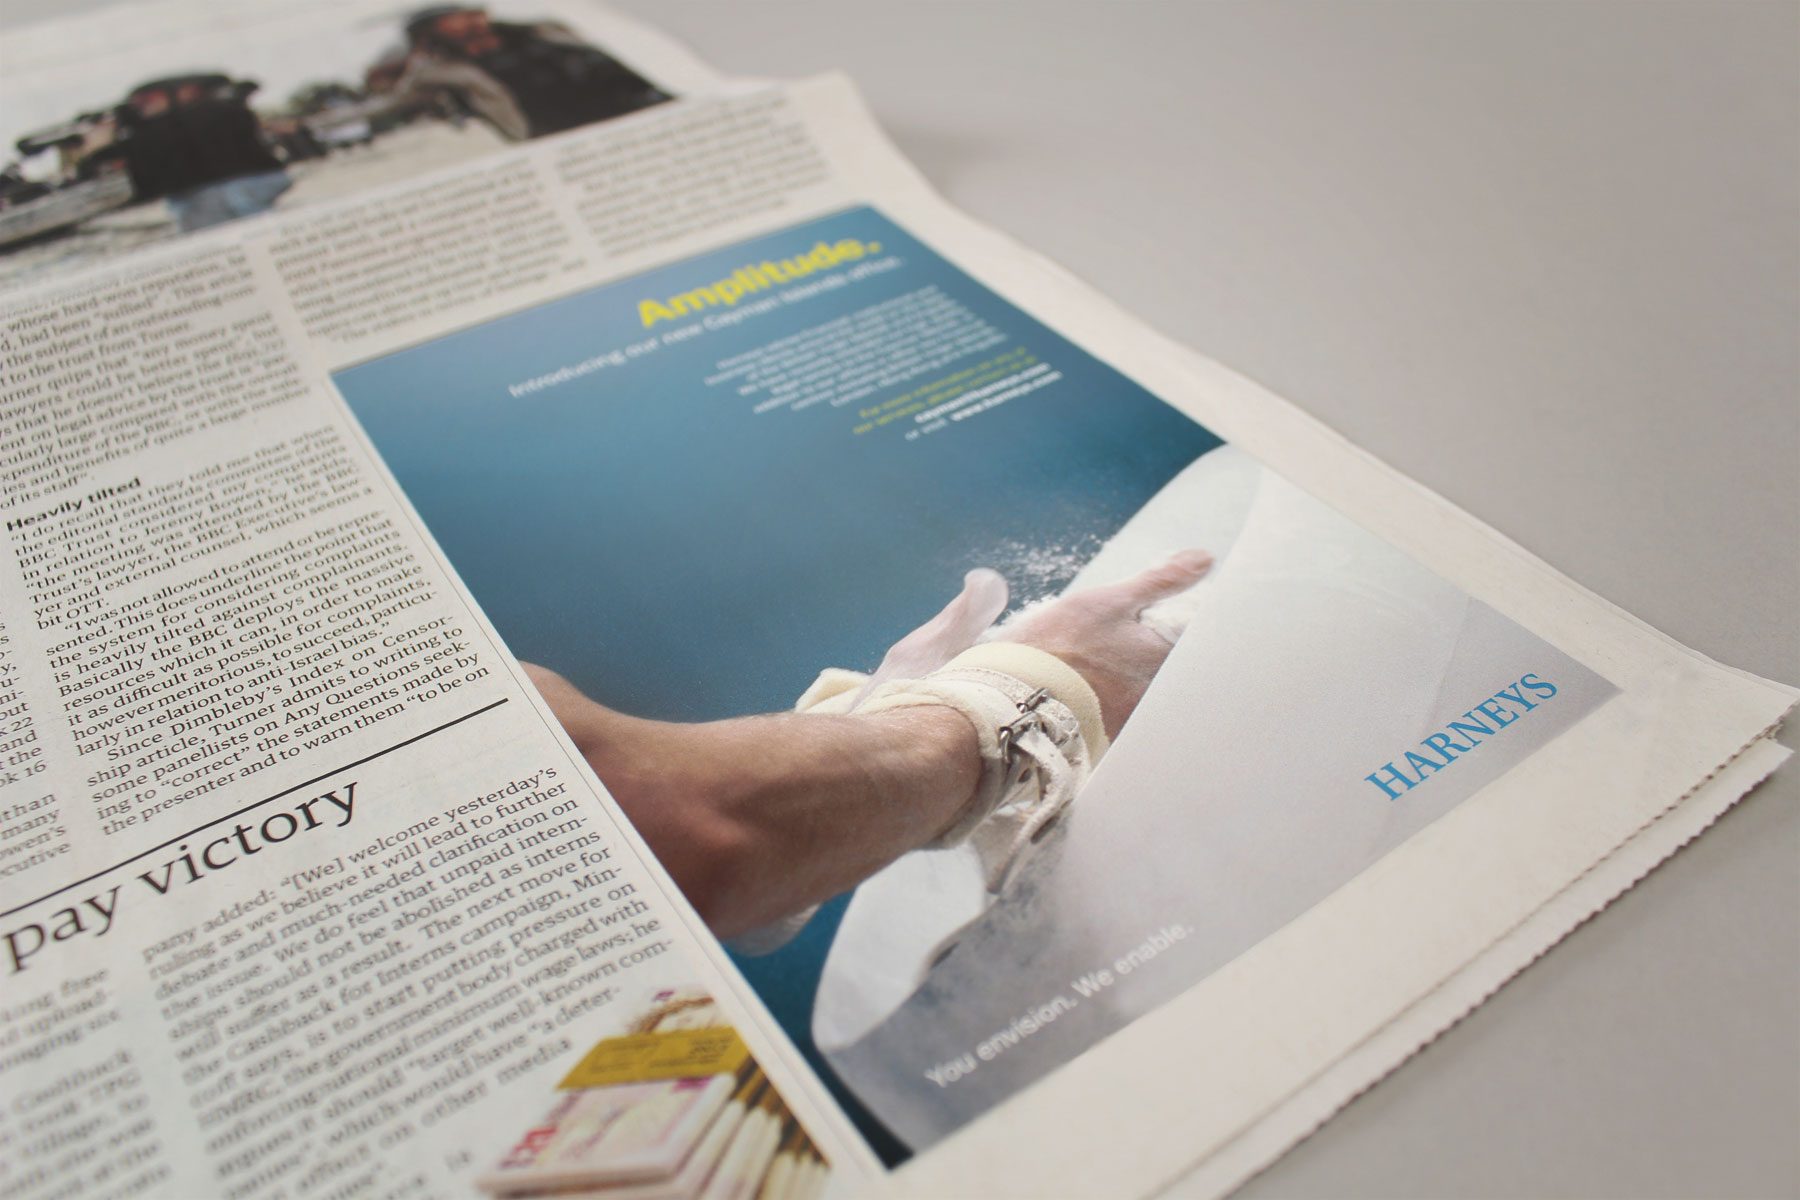 The project deliverables included the design of an above the line campaign around brand launch.